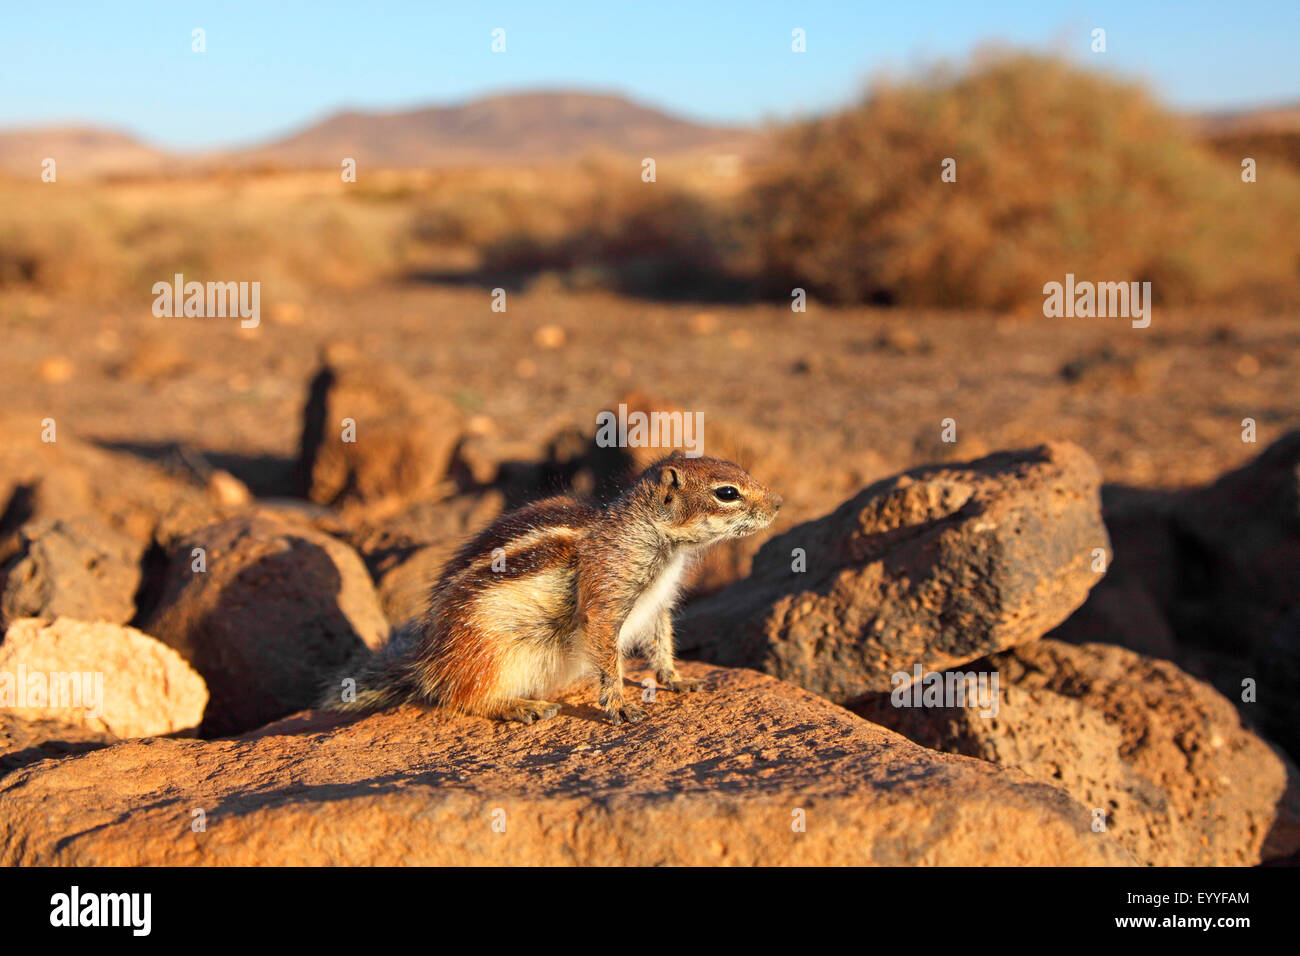 barbary ground squirrel, North African ground squirrel (Atlantoxerus getulus), sits on a stonewall in semi-desert, - Stock Image